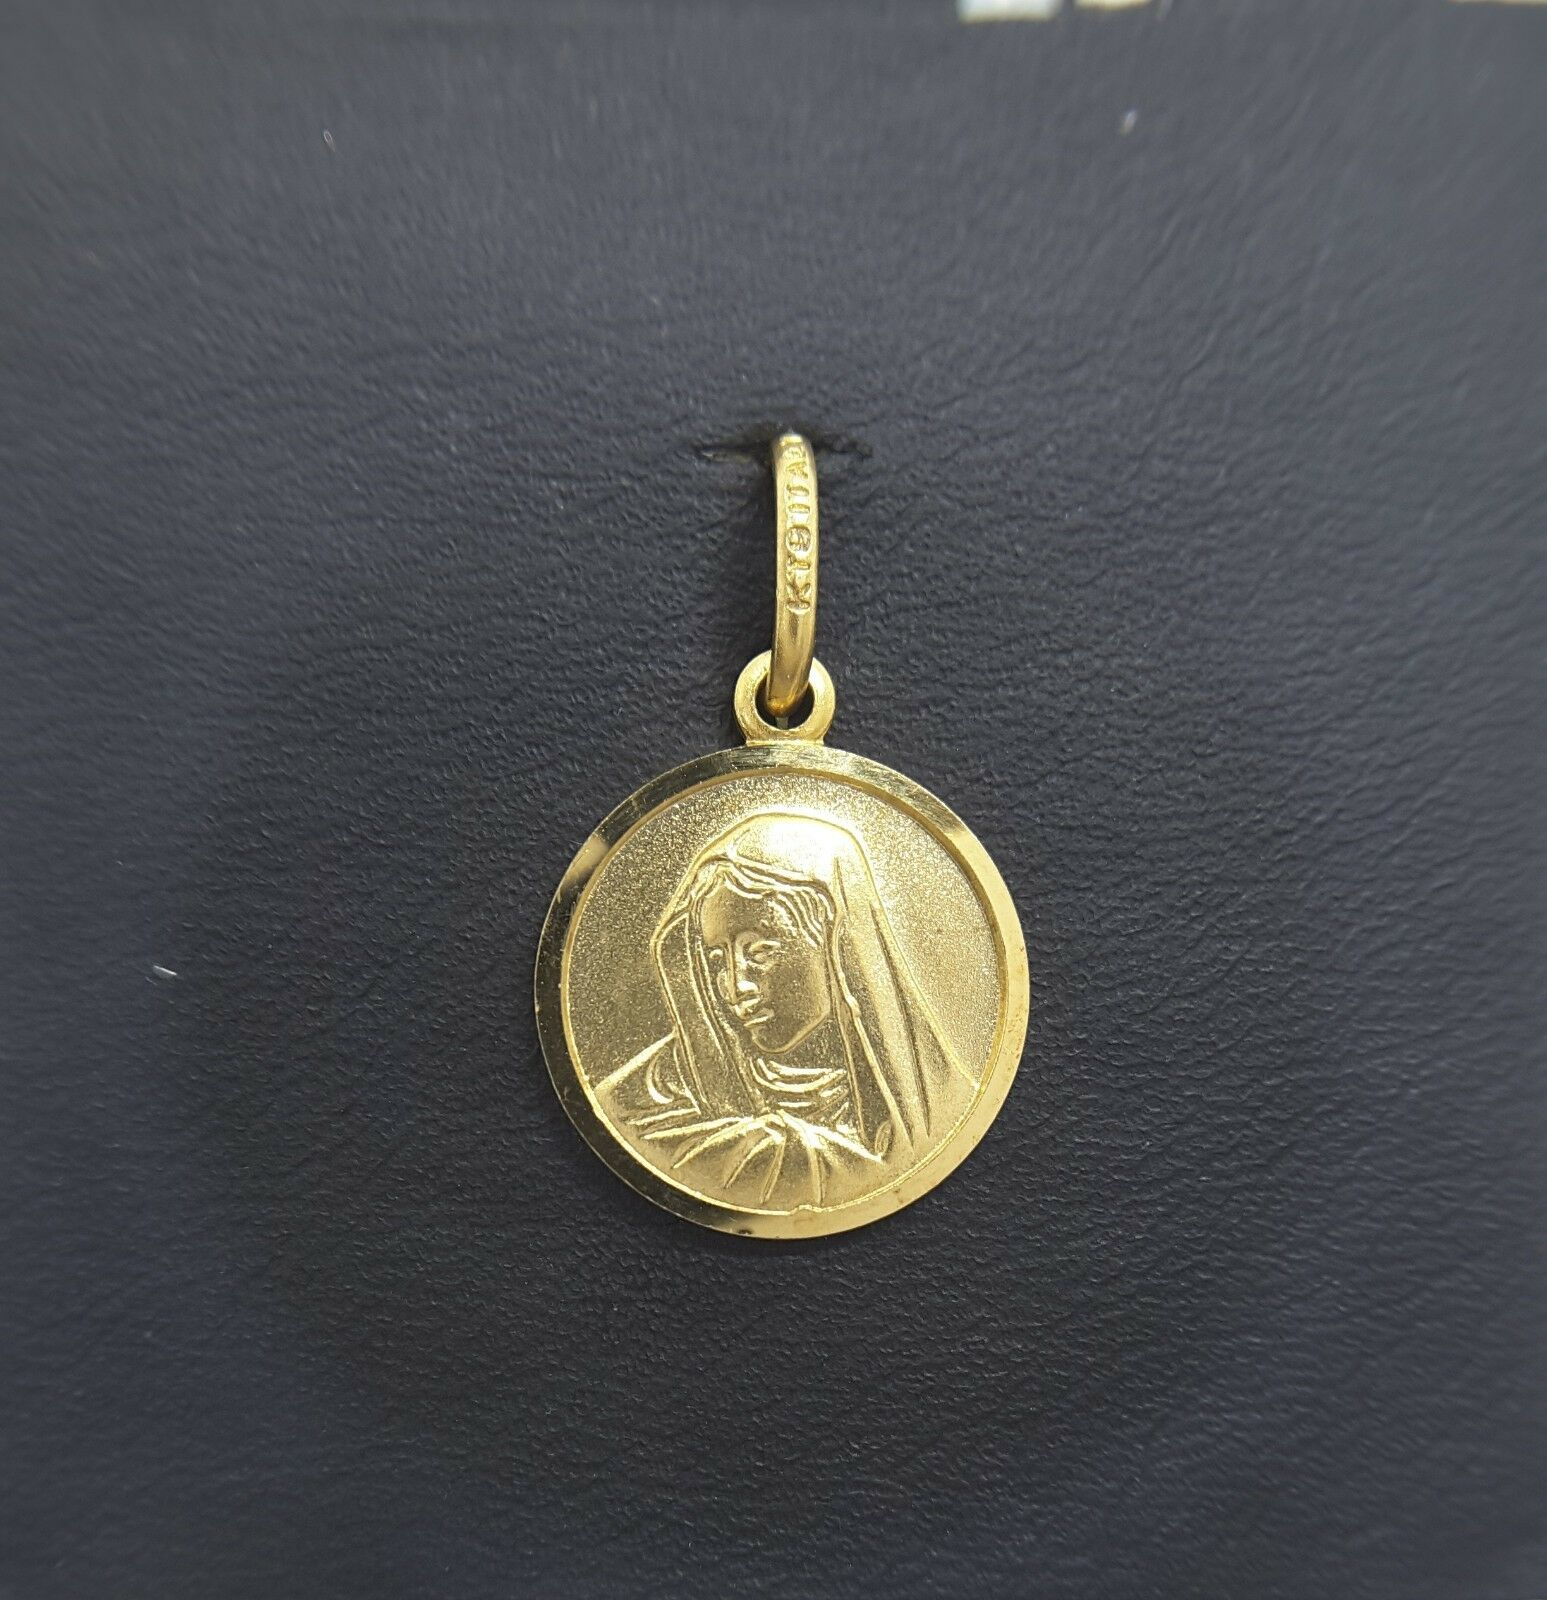 Miran 081101 9k Yellow gold Mawomen Medallion Pendant 14mm 1.8g RRP  235